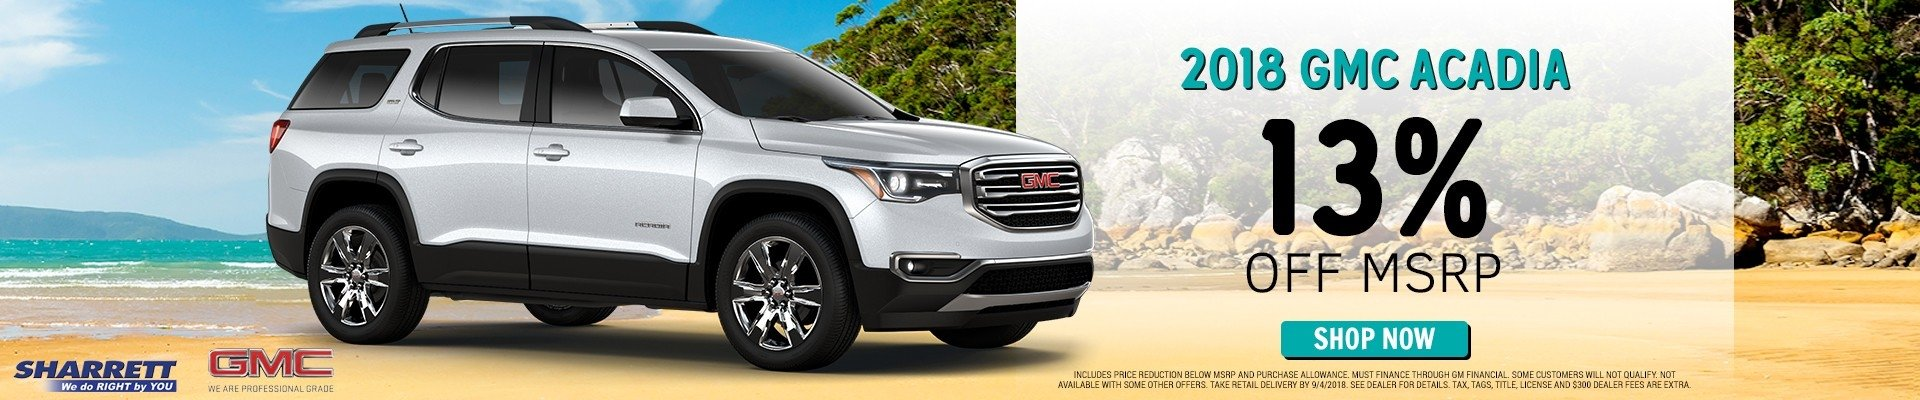 Get a 2018 GMC Acadia for 13% off MSRP | Sharrett Buick GMC